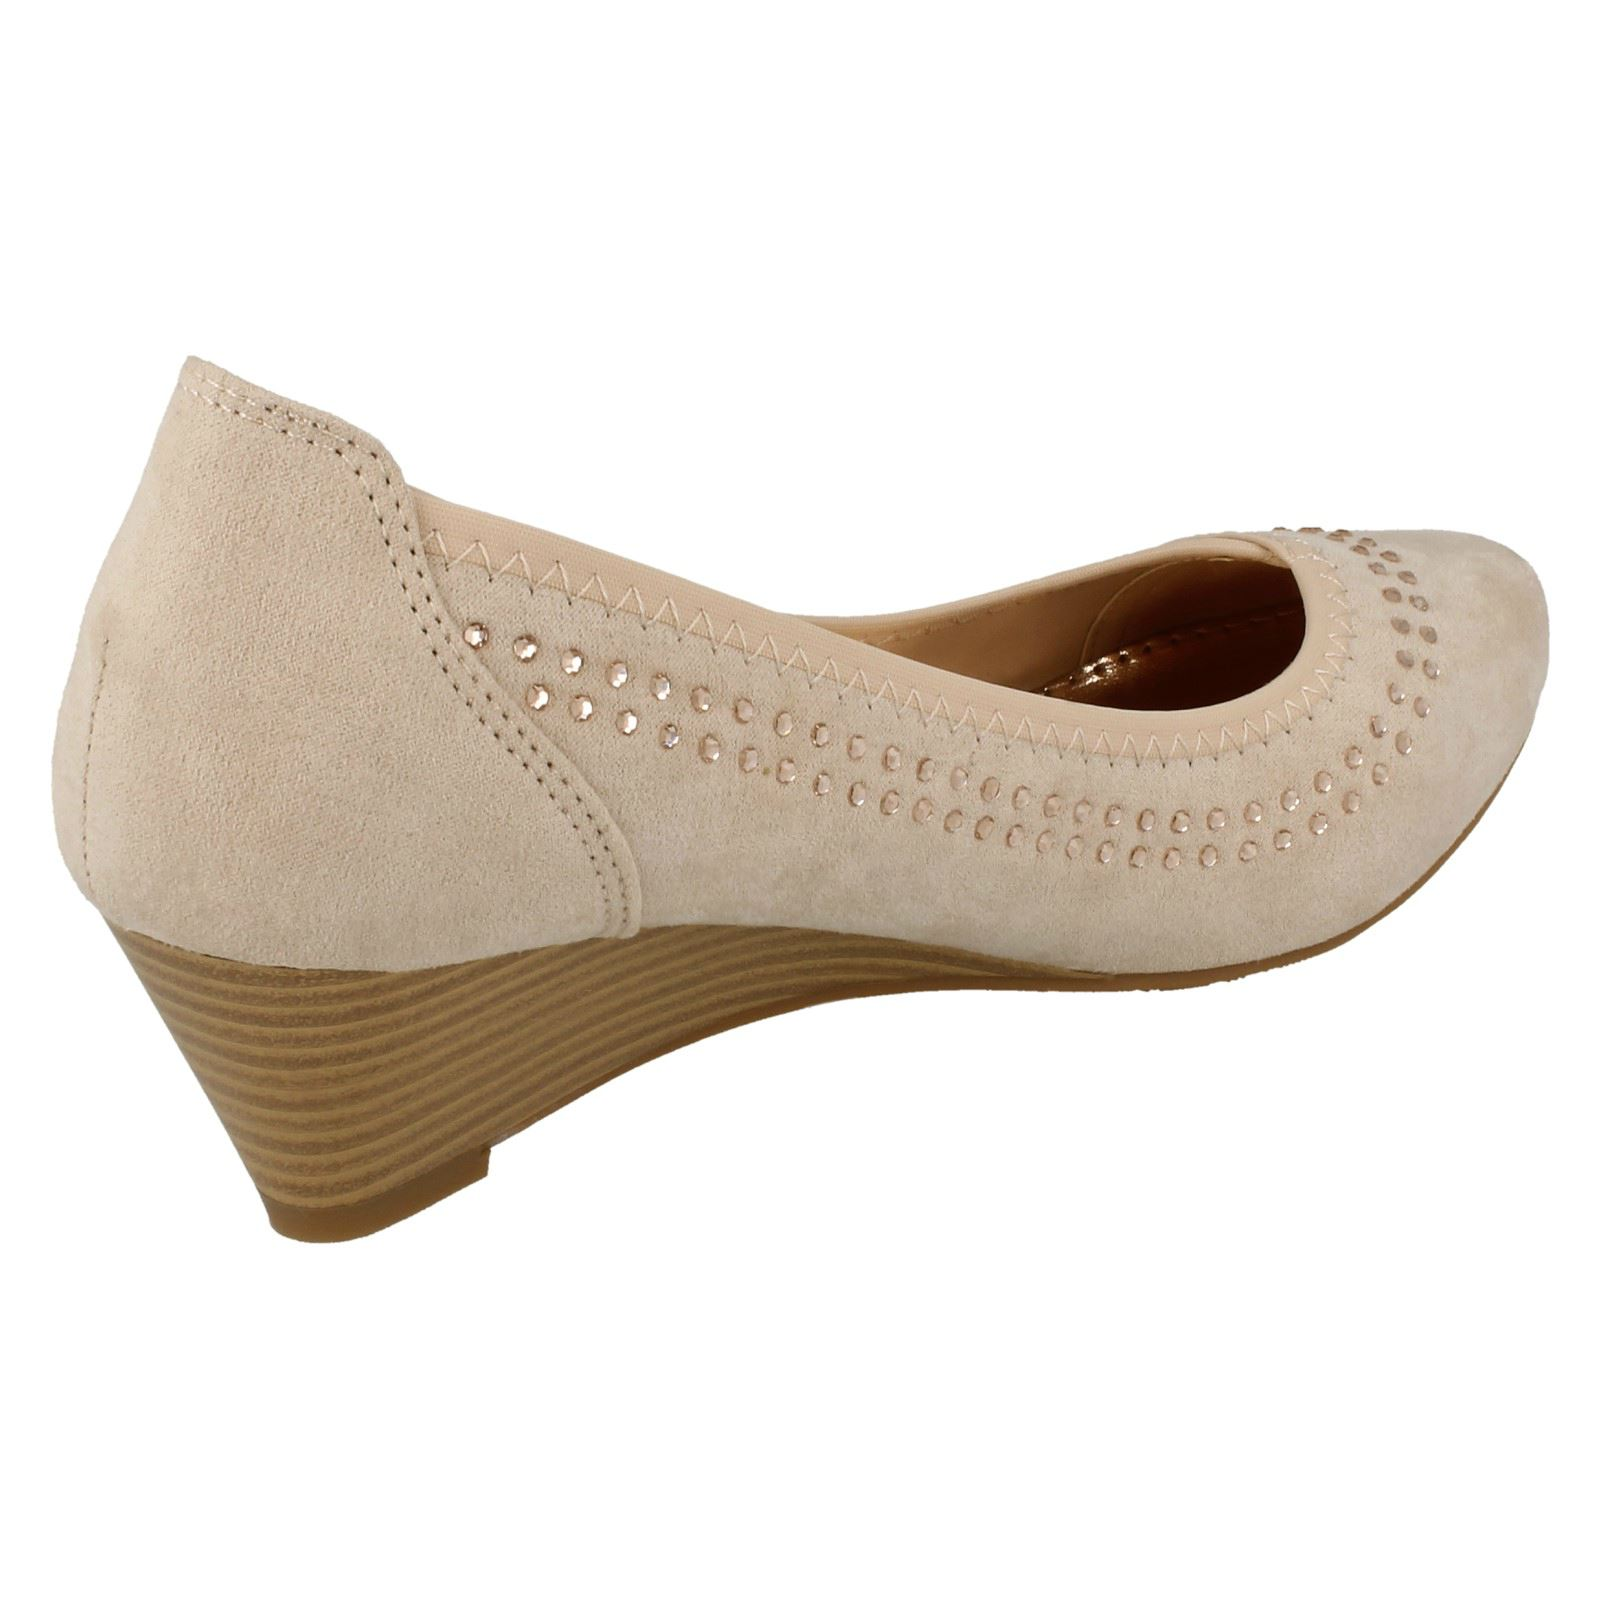 style 984 mid wedge court shoes ebay